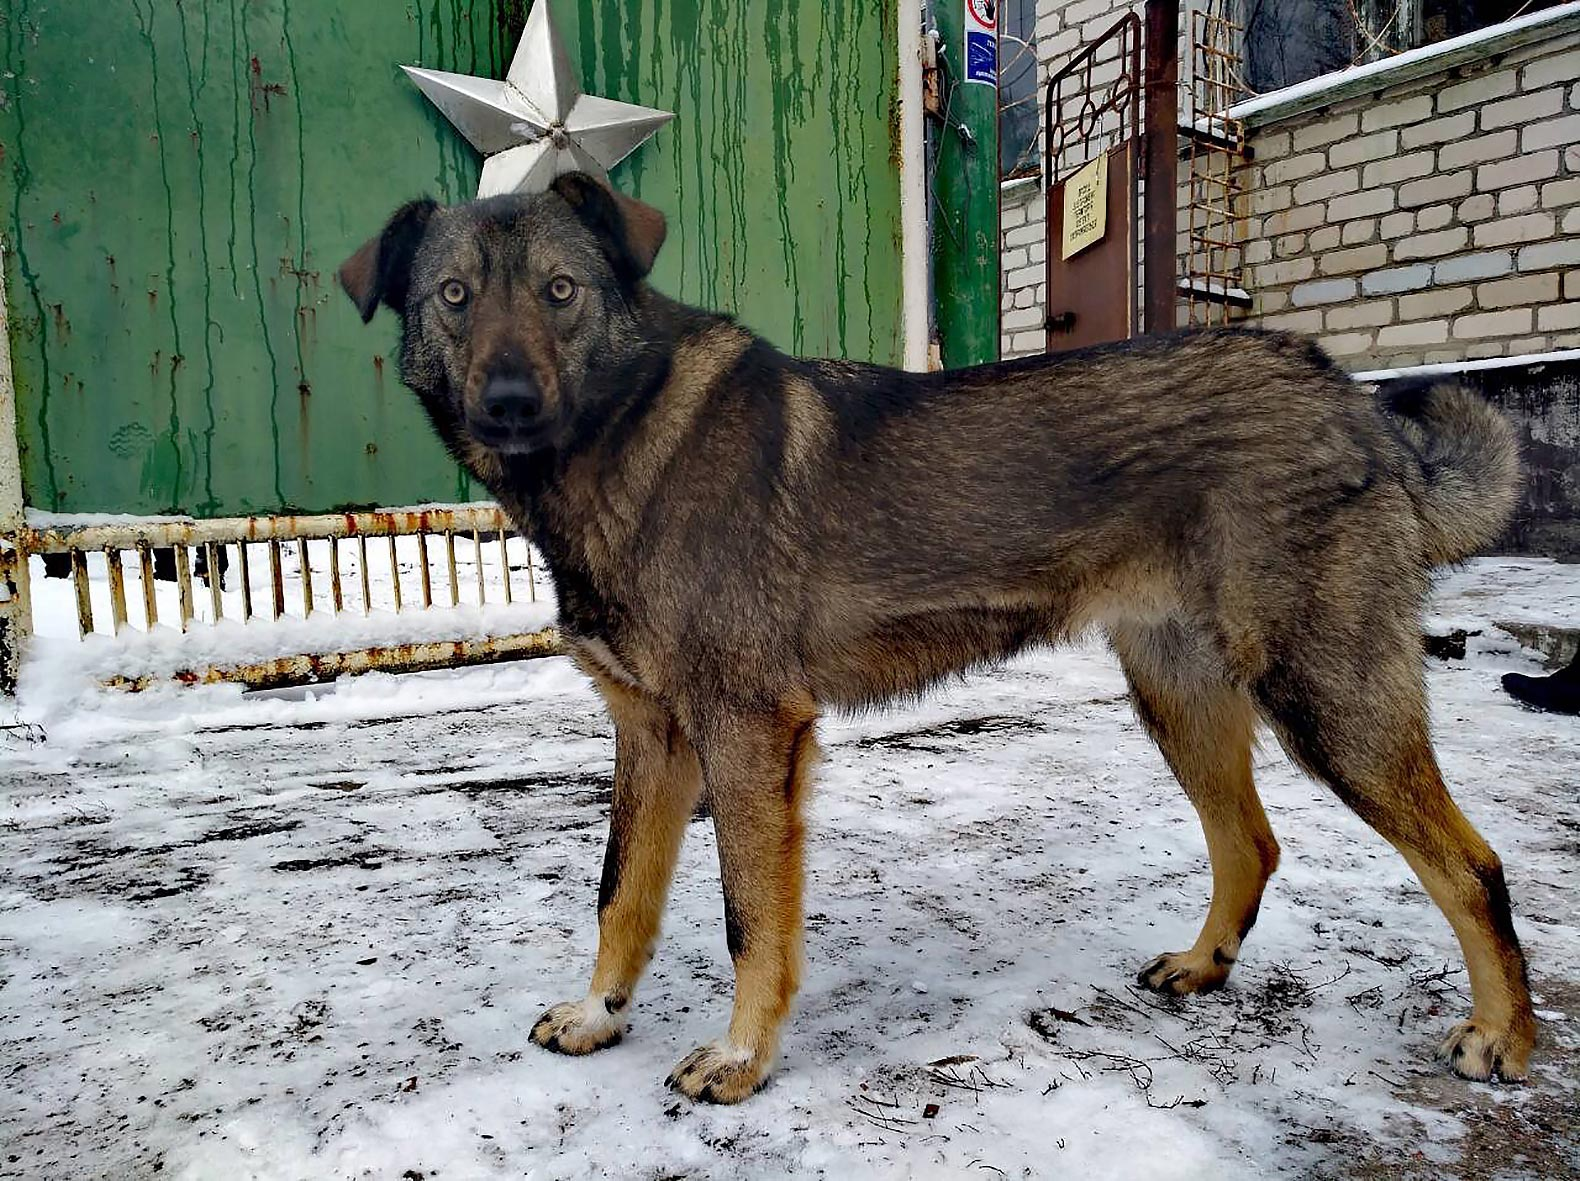 Chernobyl's abandoned dogs create their own exclusion zone community